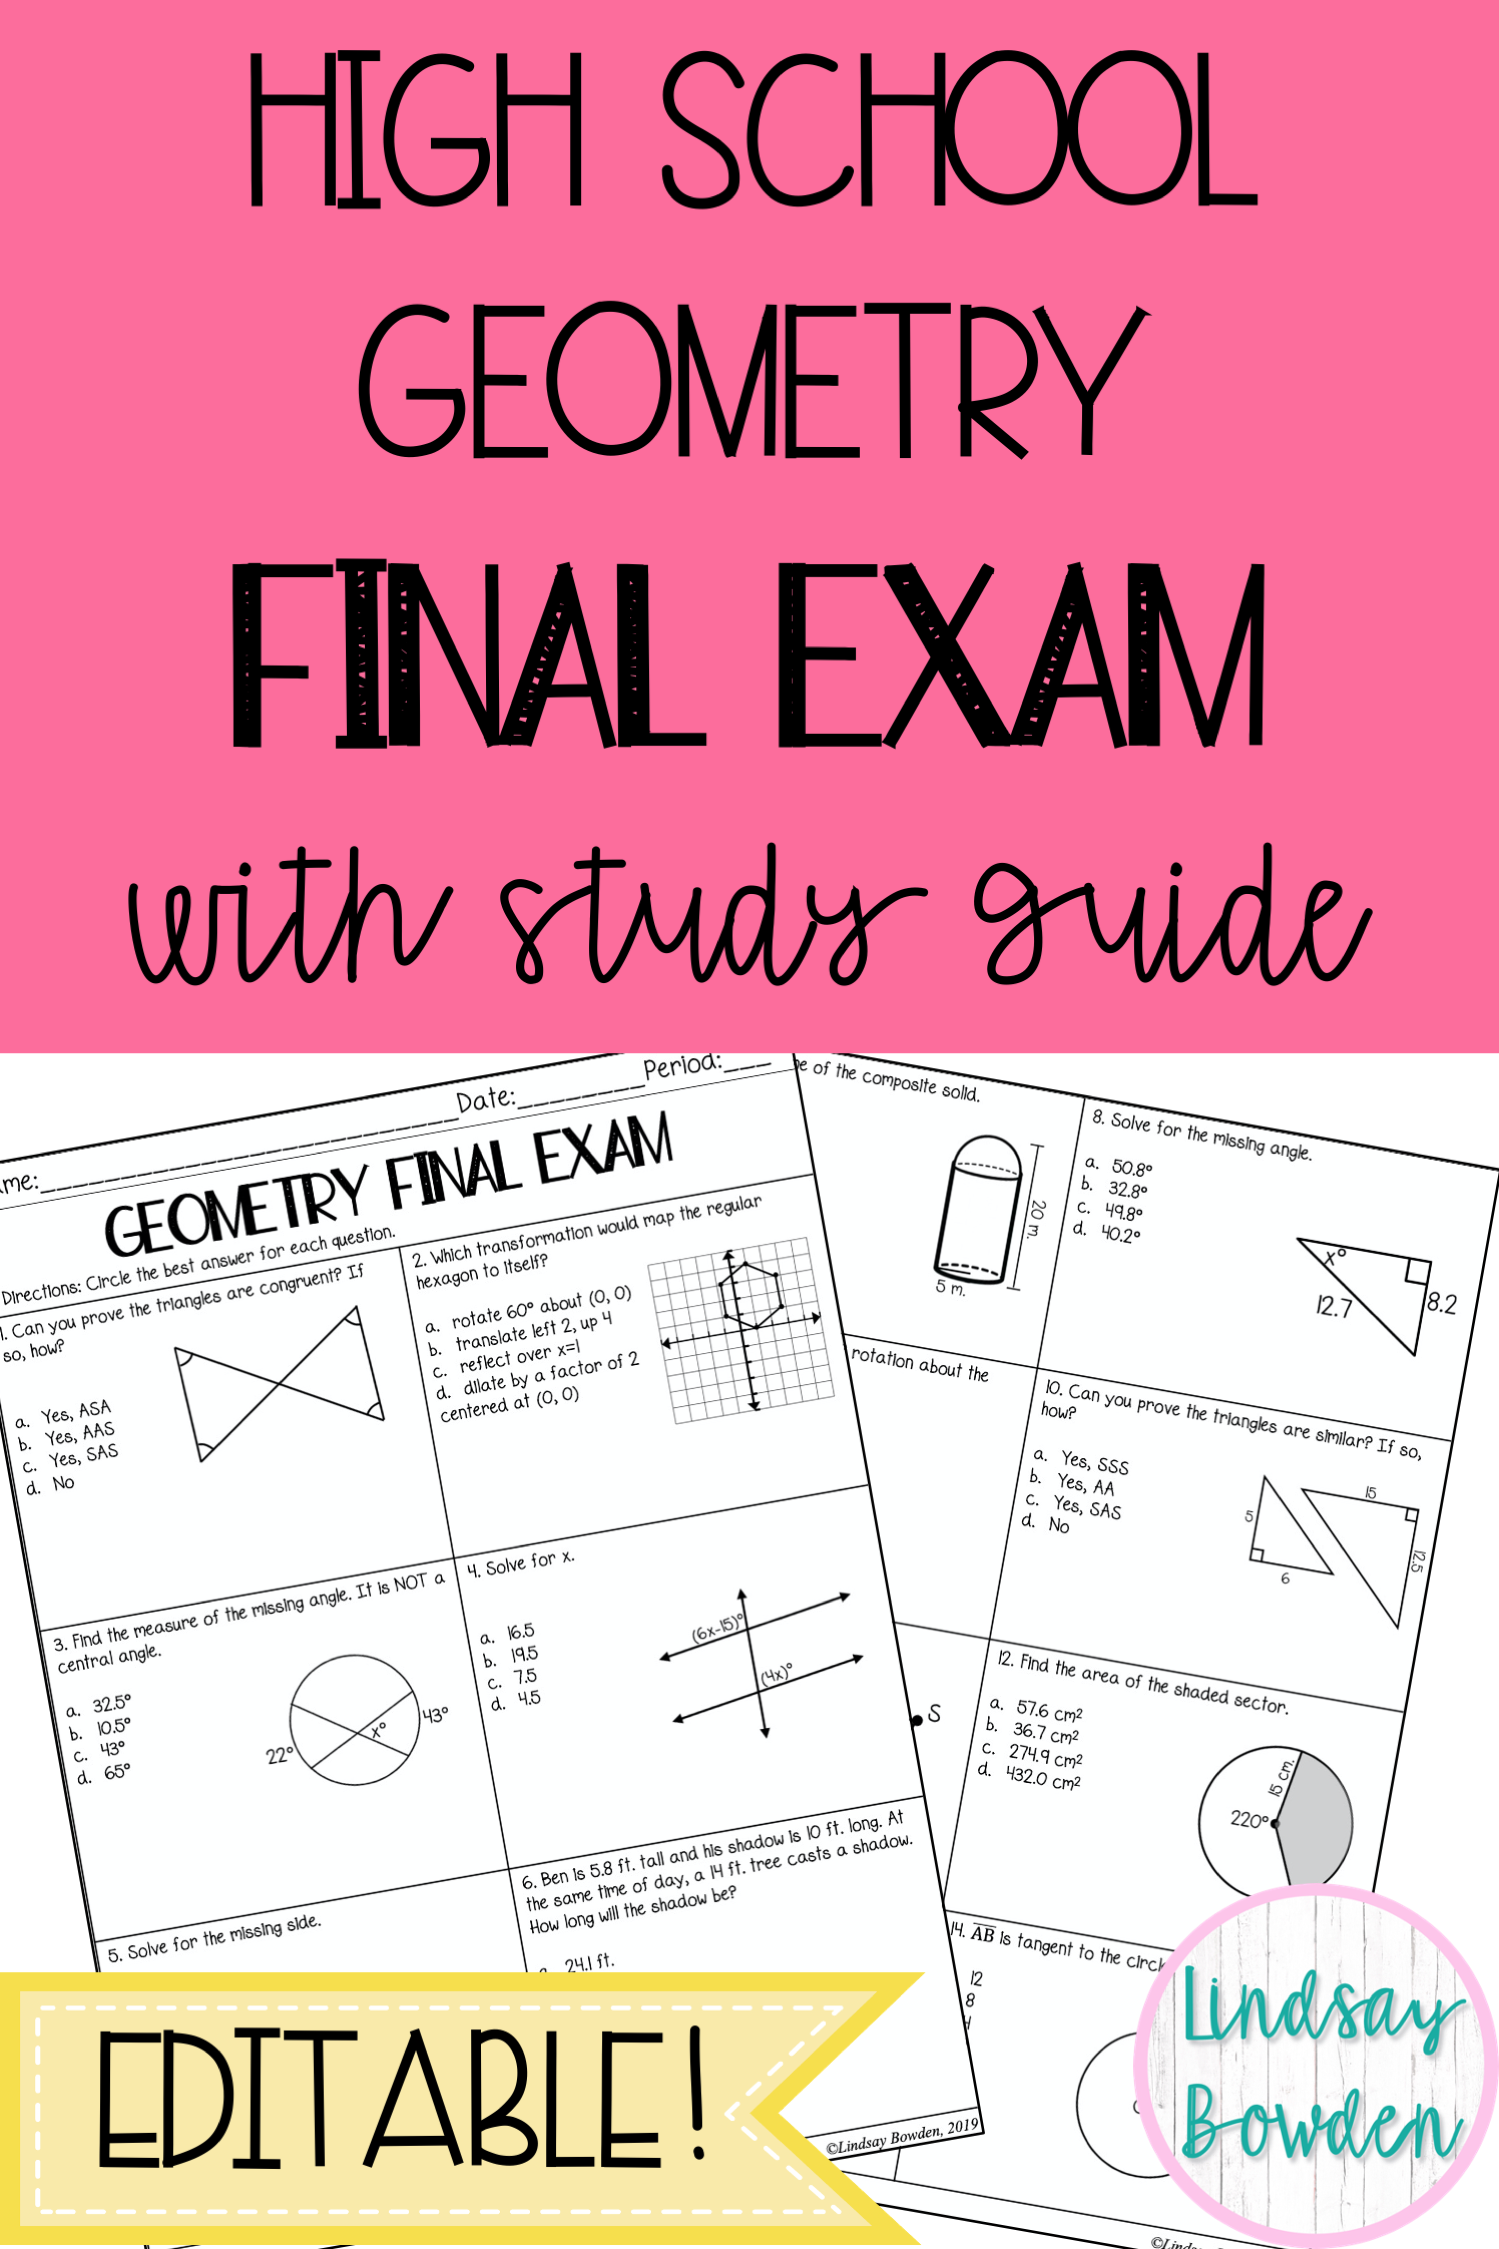 Geometry Final Exam With Study Guide In